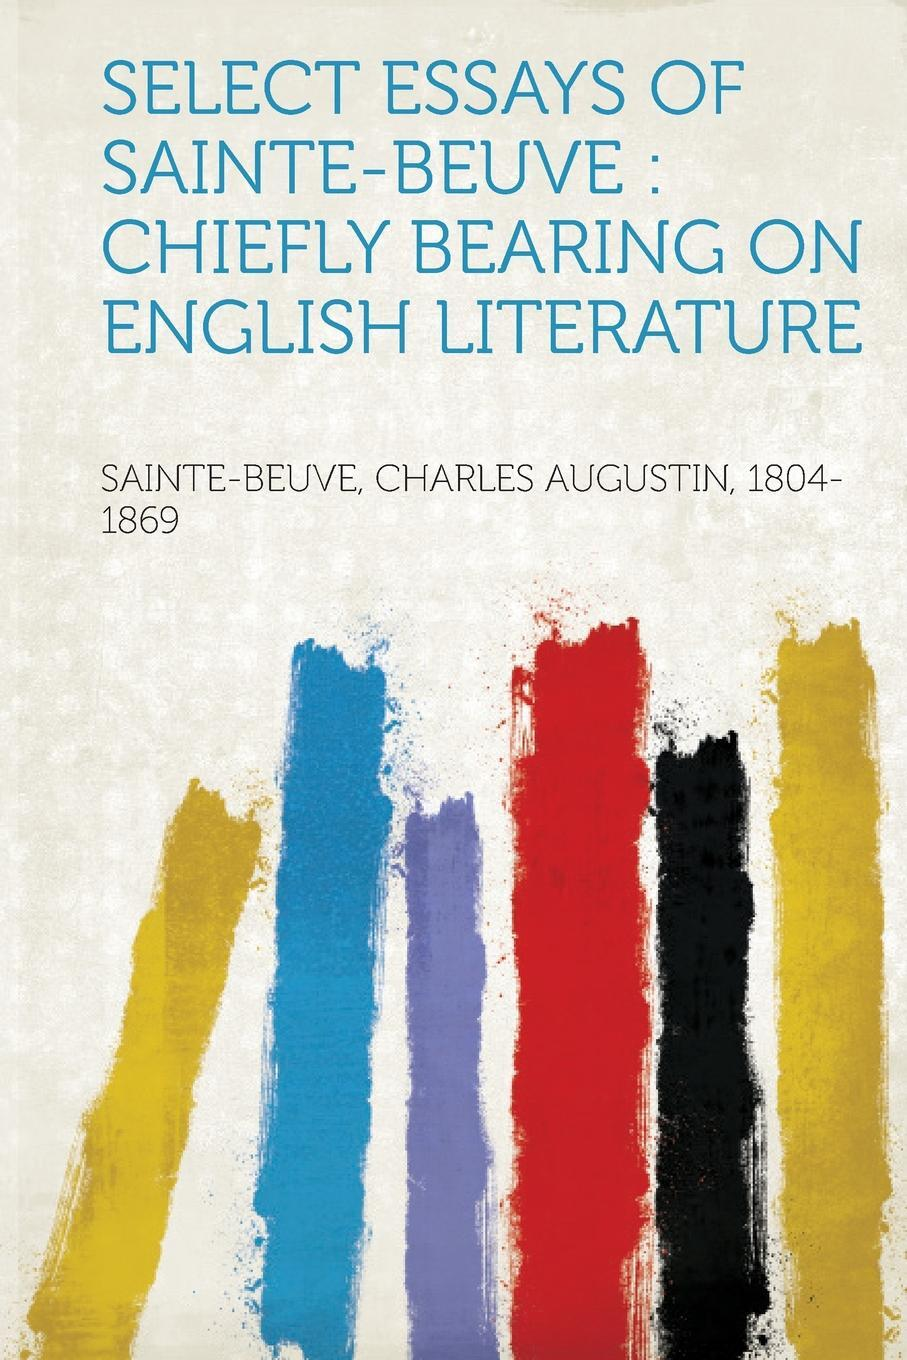 Select Essays of Sainte-Beuve. Chiefly Bearing on English Literature